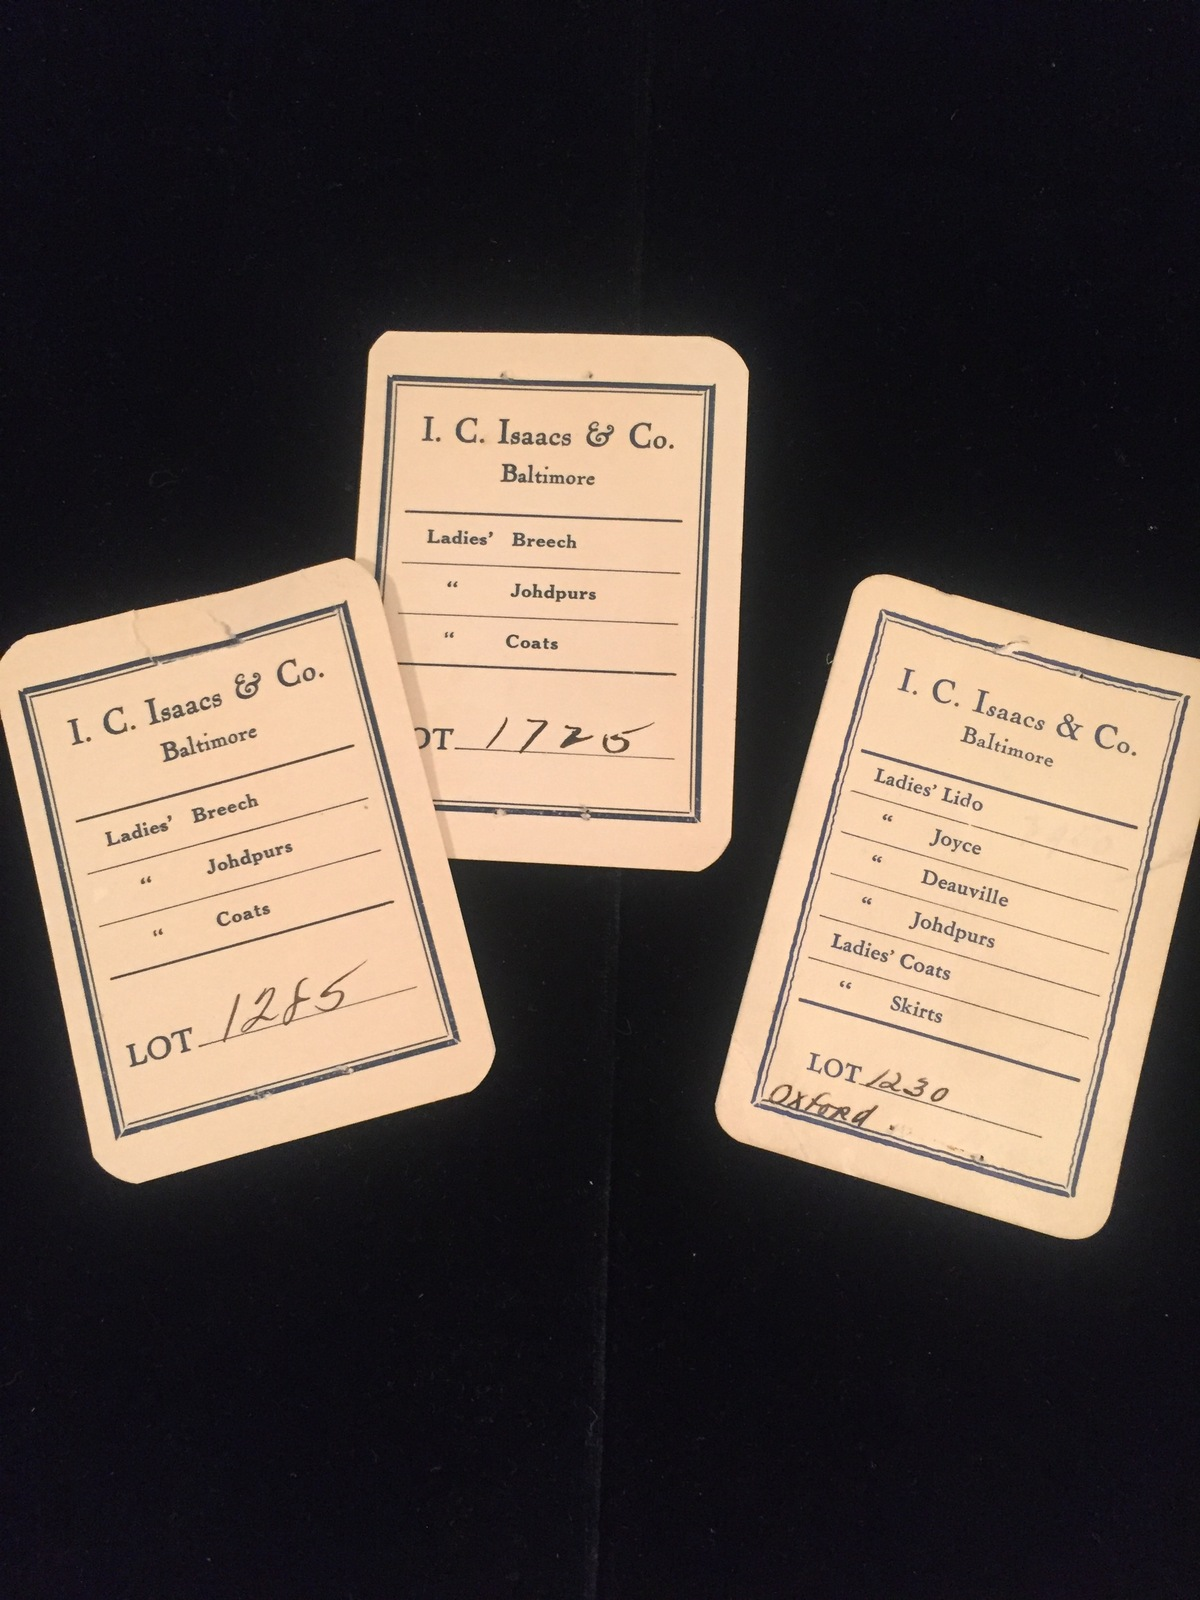 Vintage I.C. Isaacs & Co. (Baltimore) ladies clothing tags - set of 3